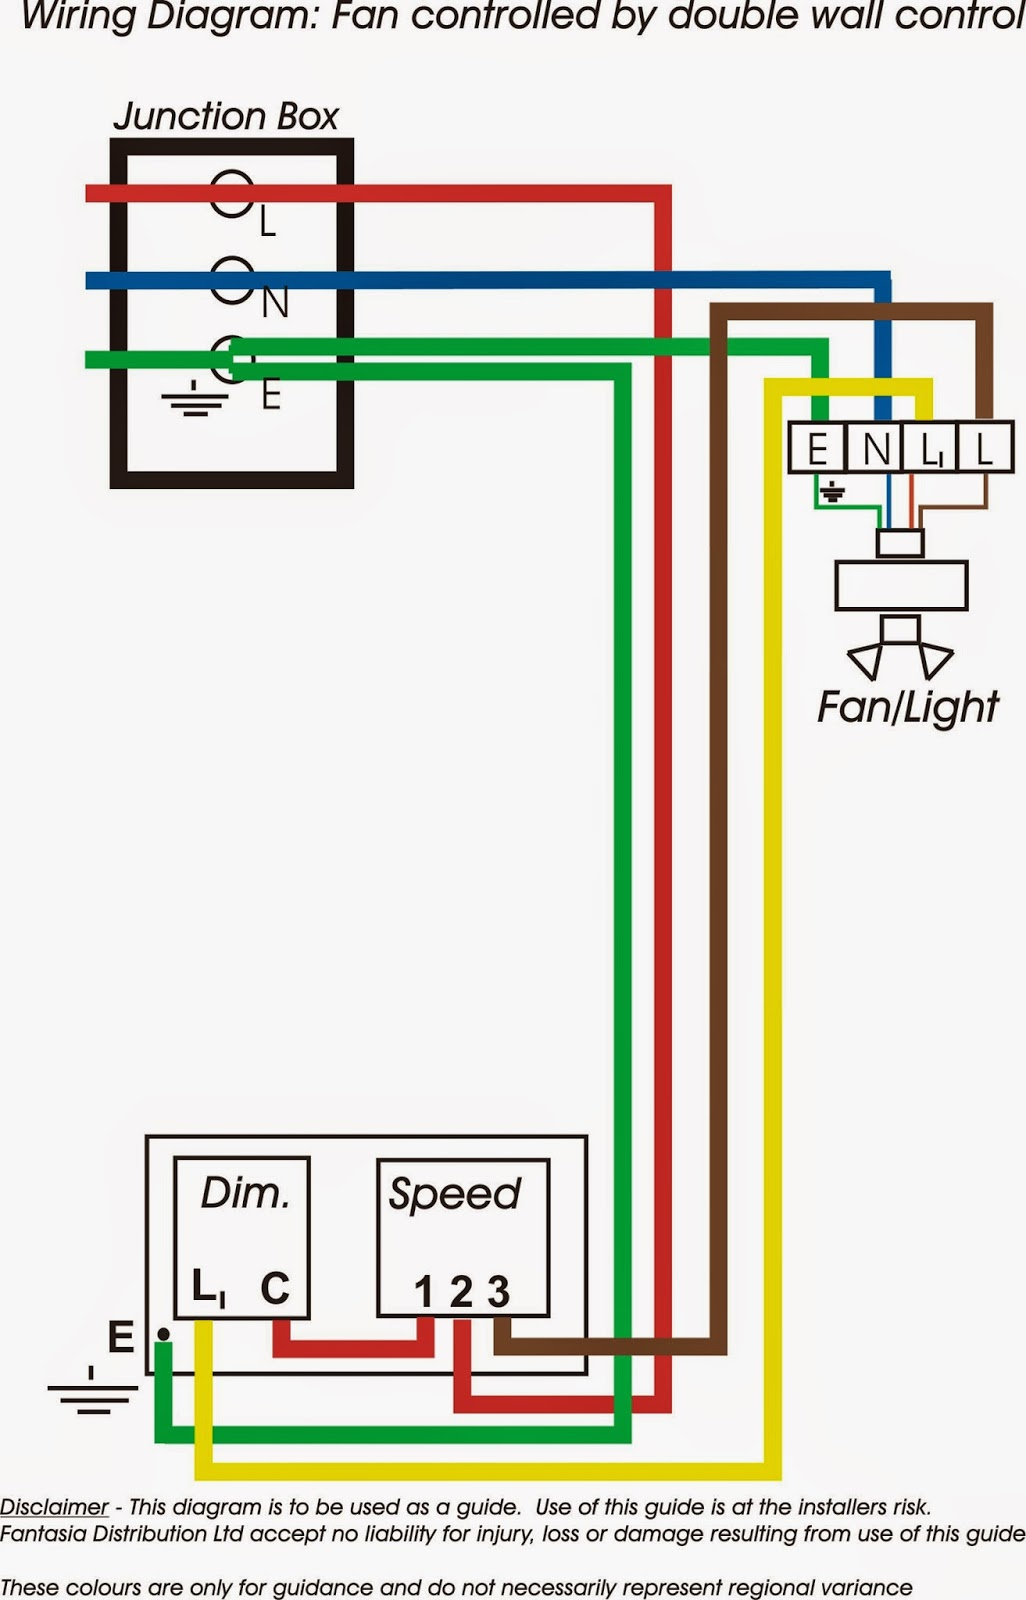 [WQZT_9871]  ZIFD_5838] Nitro Wiring Diagram Diagram Base Website Wiring Diagram -  TURBODIAGRAM.MADBARI.IT | Image 0001 Usb Remote Shutter Wiring Diagram 3 Chdk Wiki |  | Diagram Database Website Full Edition - madbari.it